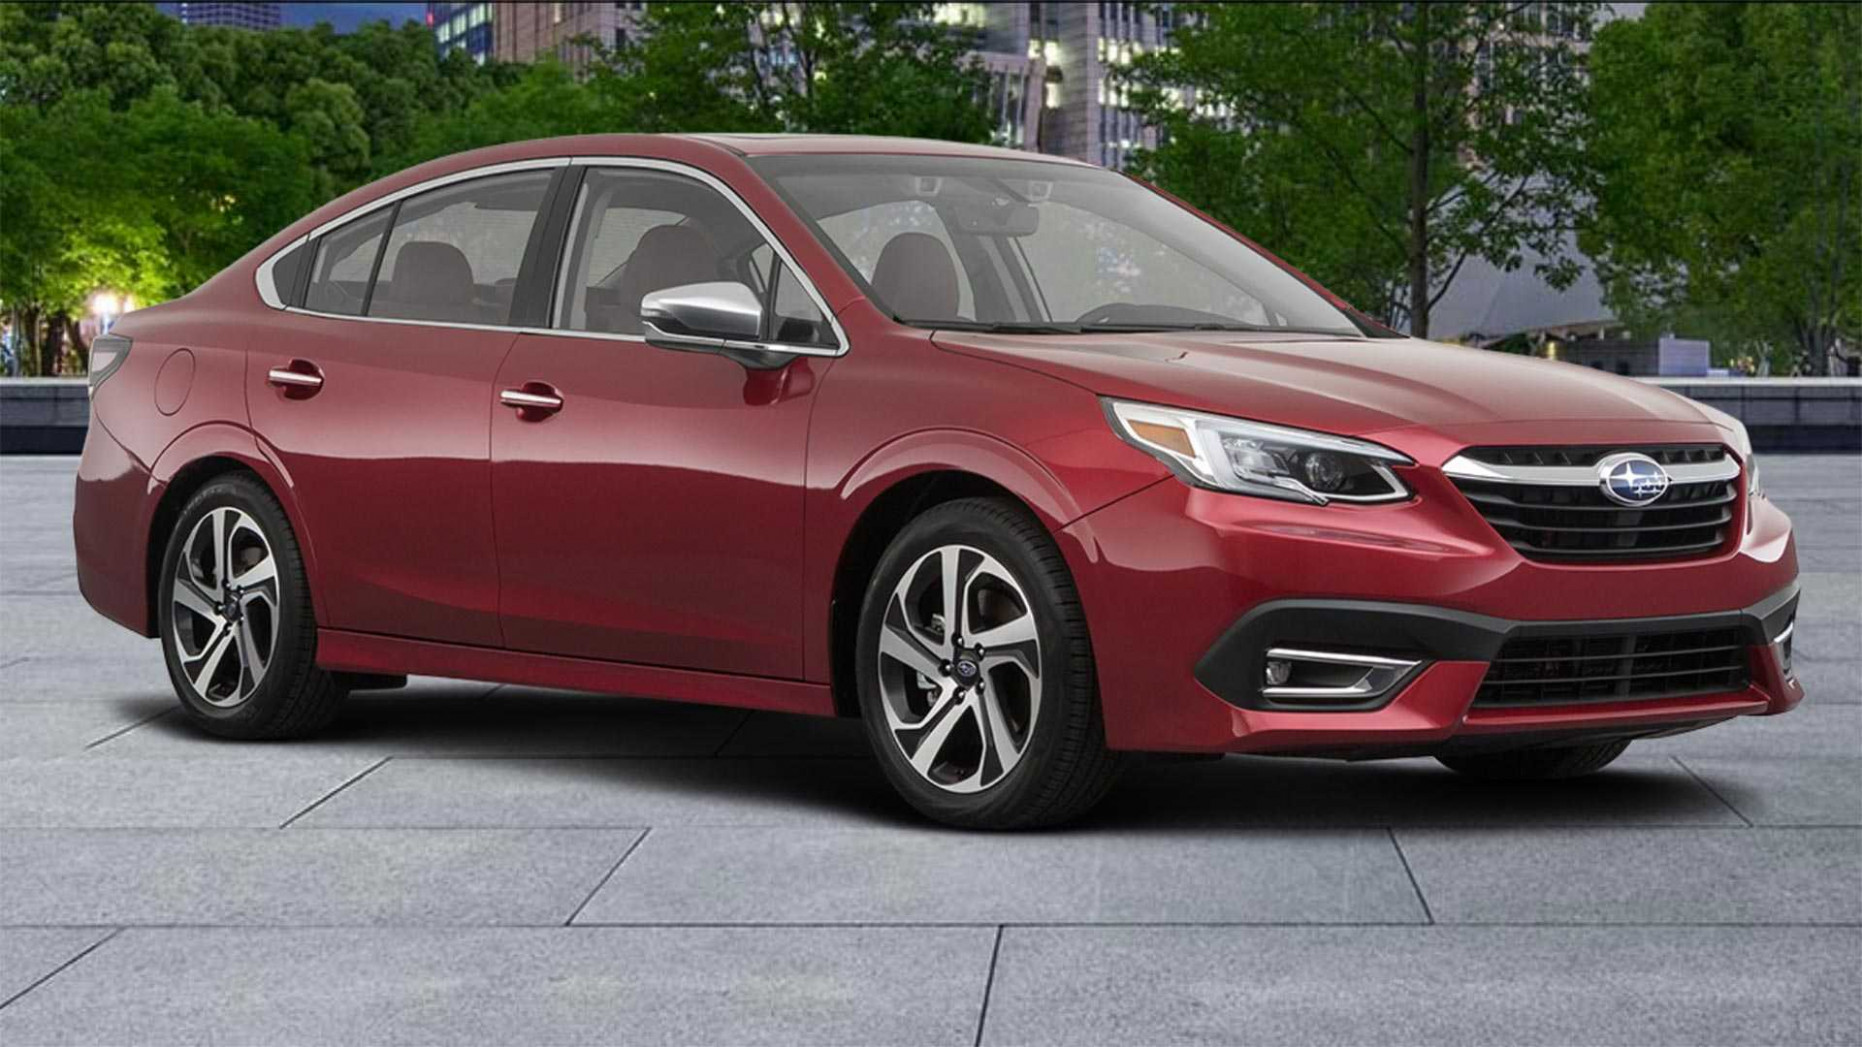 Most Expensive 6 Subaru Legacy Costs $6,6